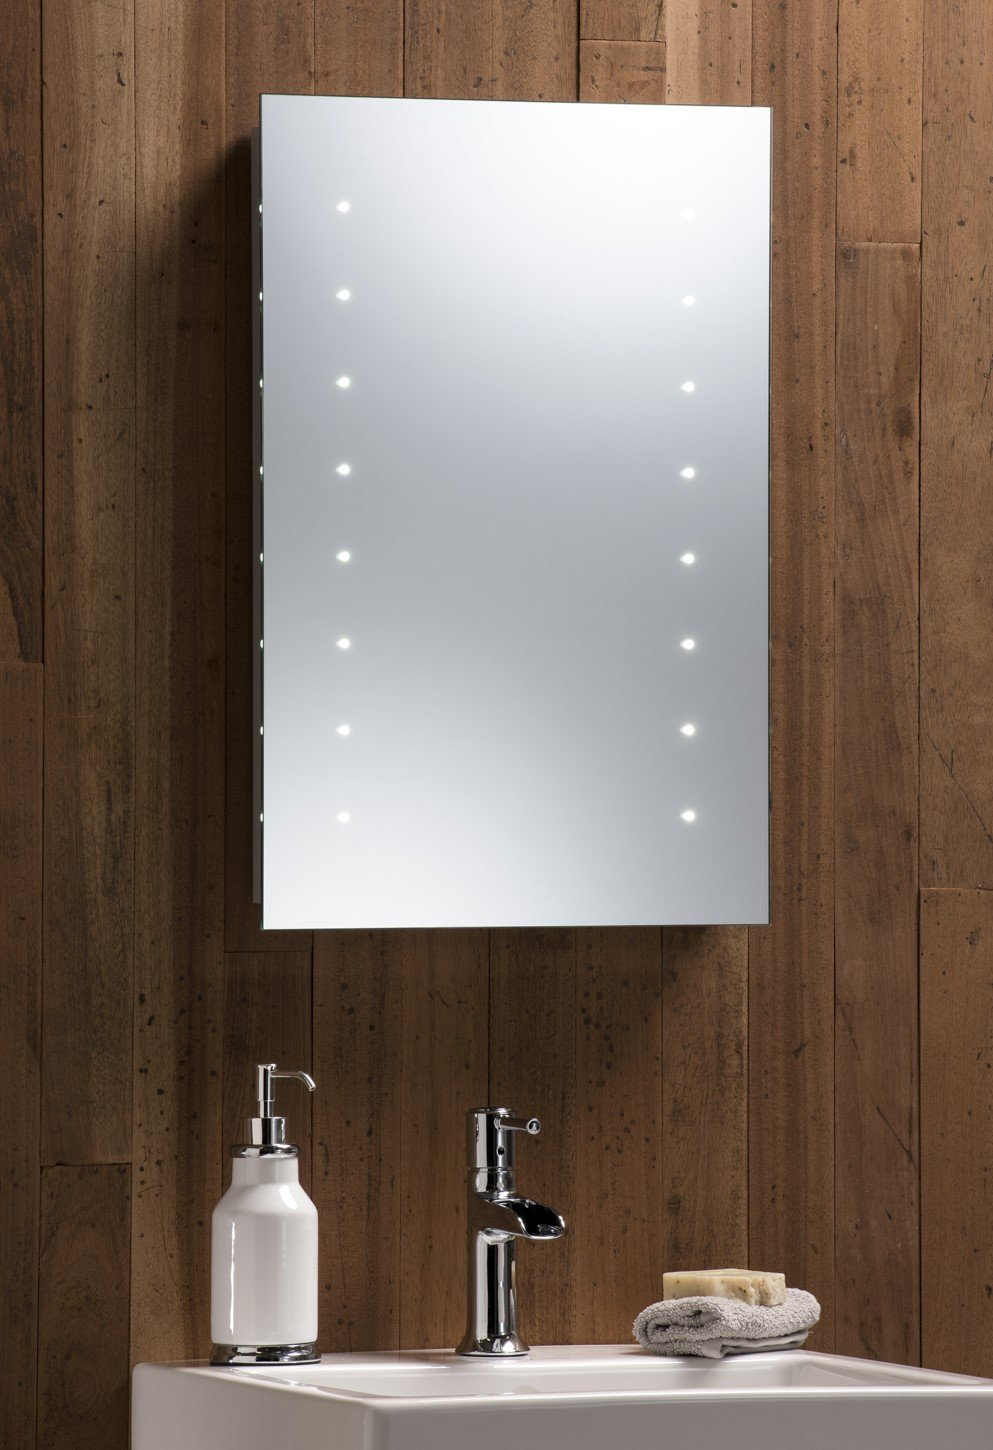 LED Battery Bathroom Mirror Illuminated 60cm X 40cm Easy Installation Hangs Both Ways Aluminium Frame With Lights Amazoncouk Kitchen Home